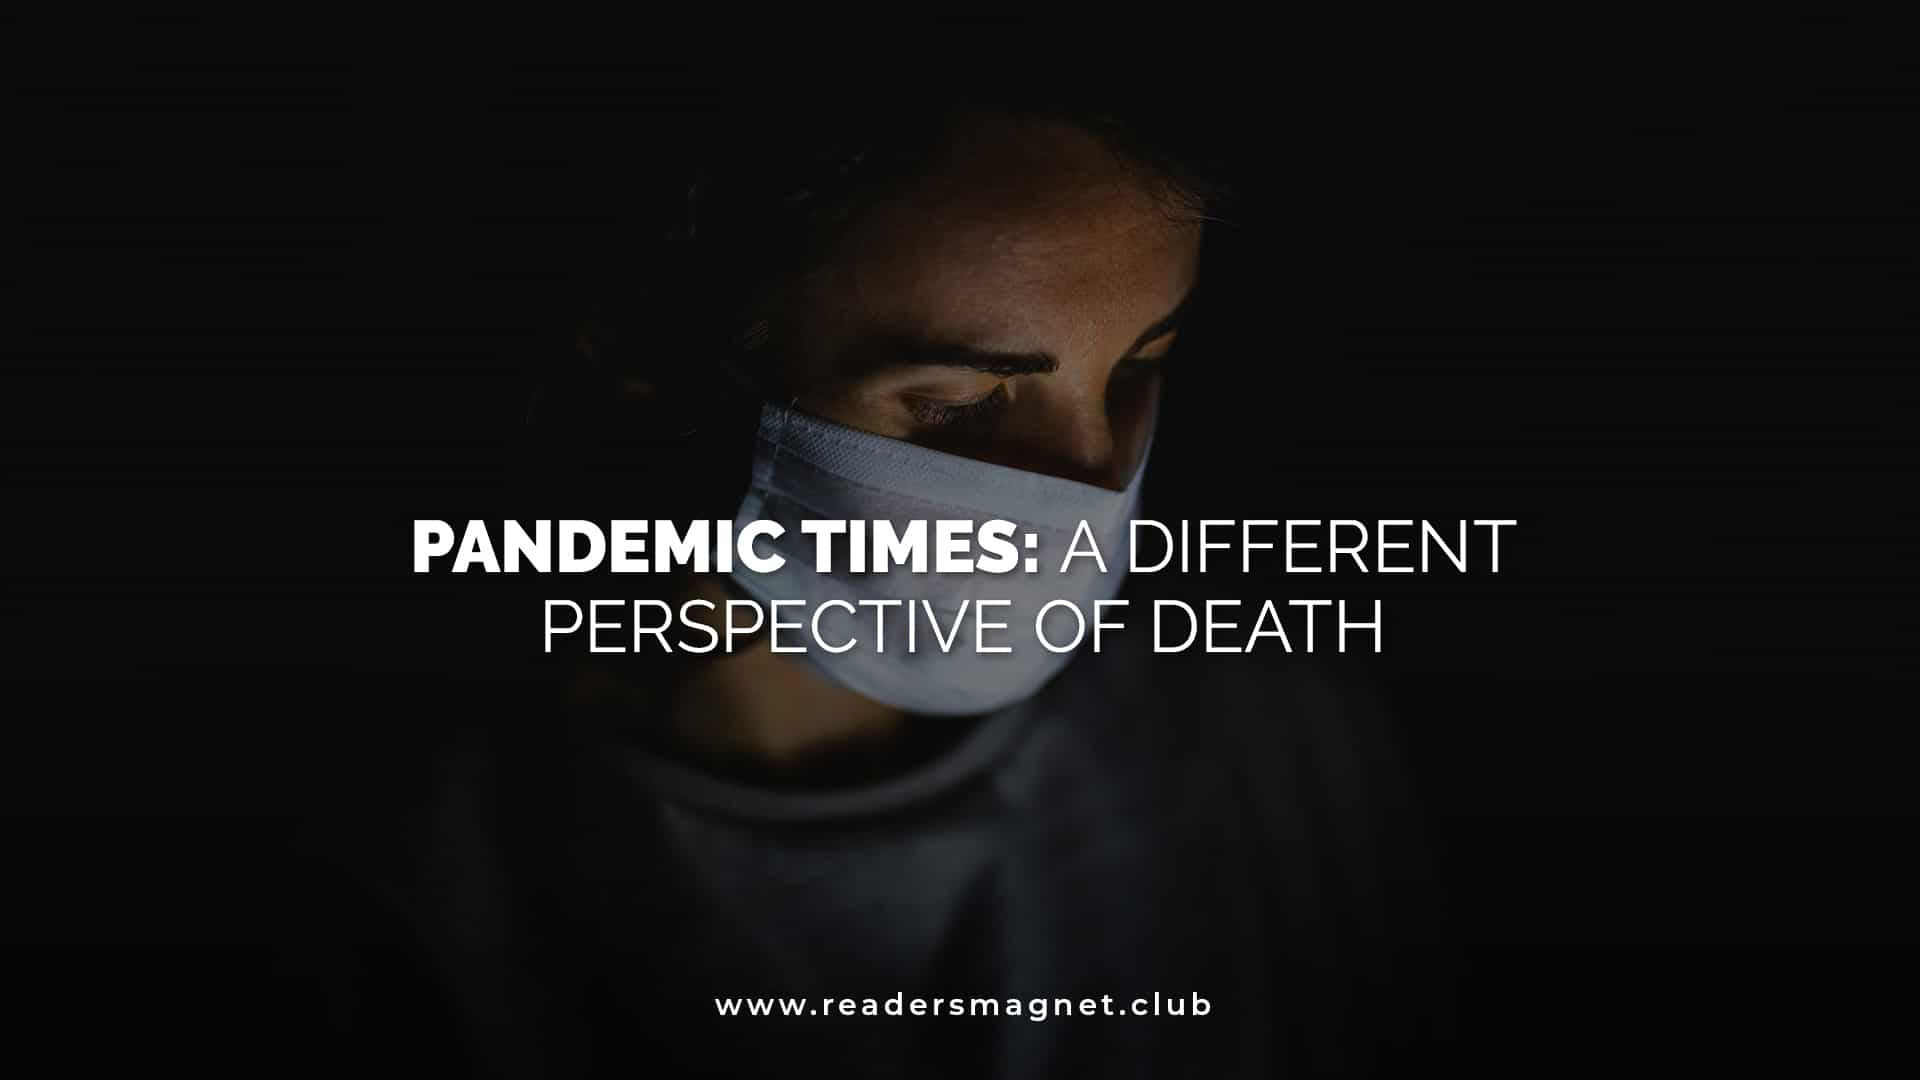 Pandemic Times A Different Perspective of Death banner